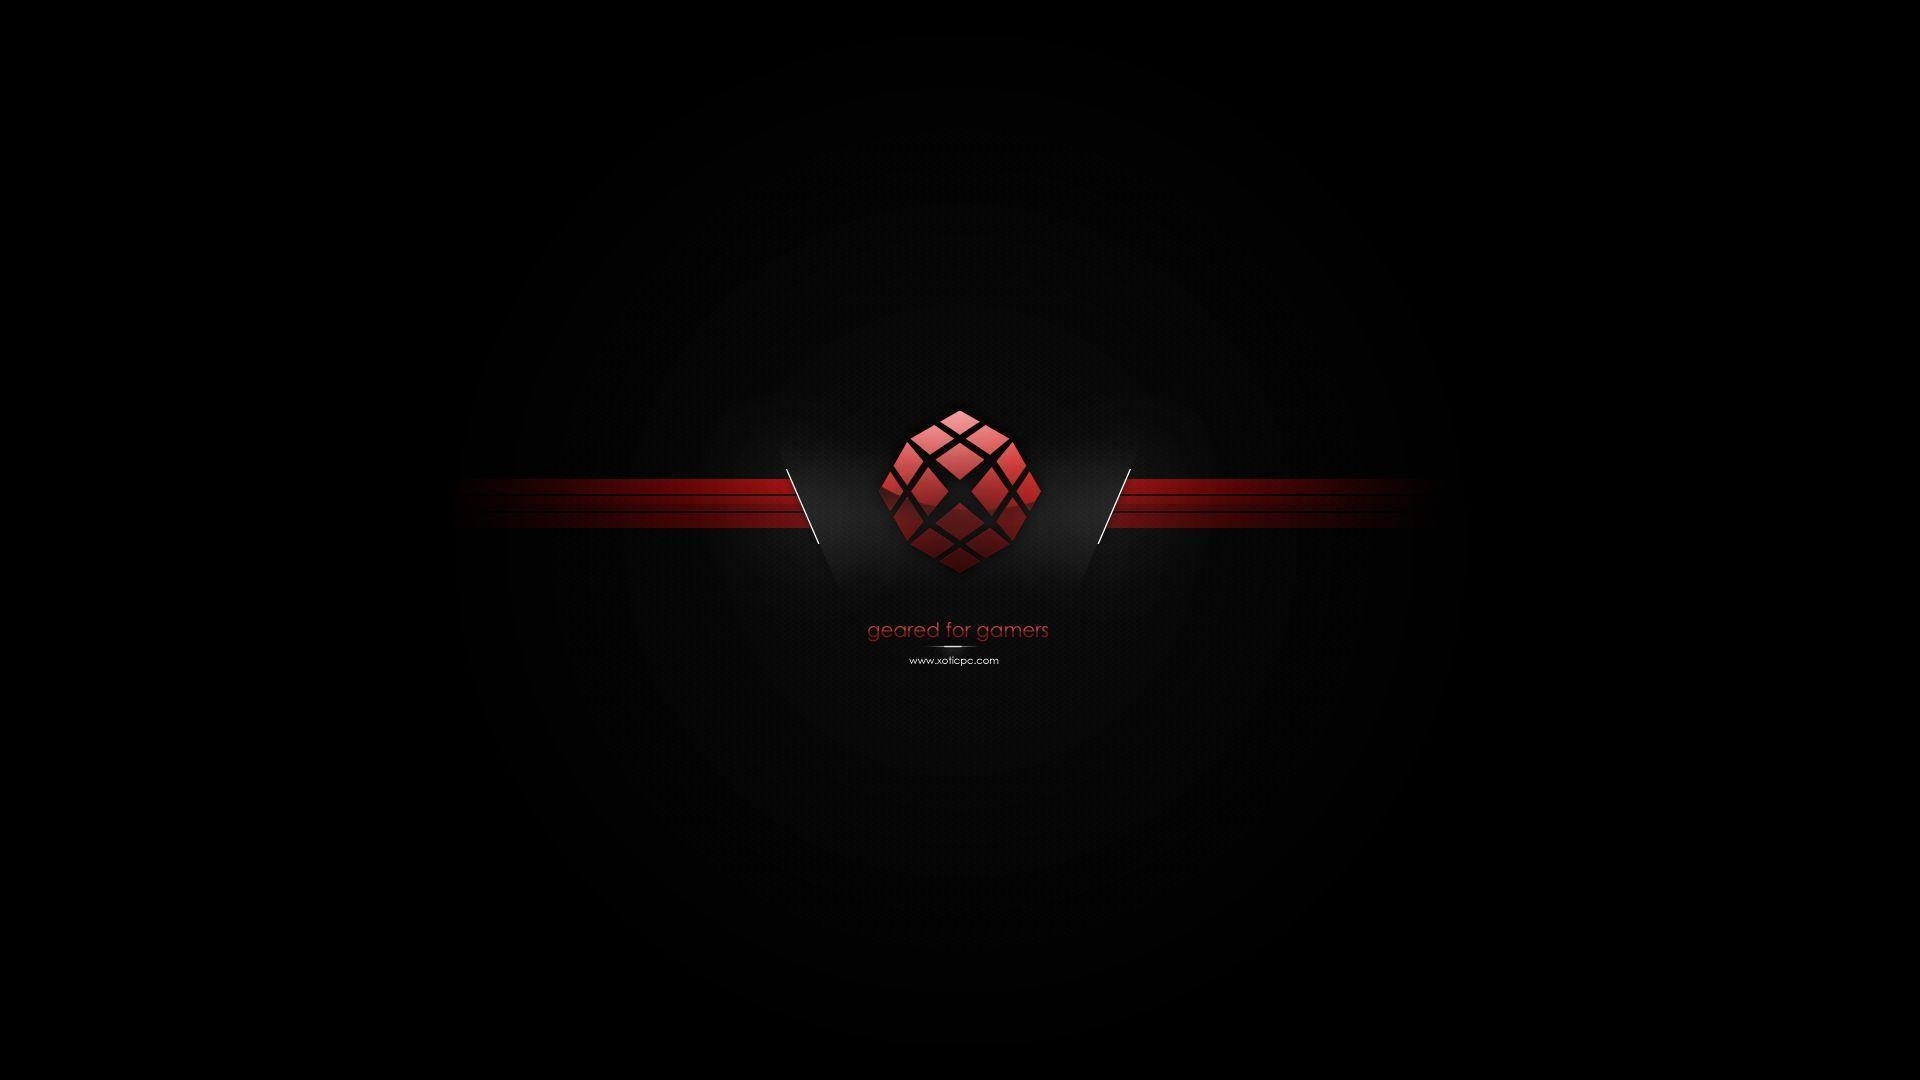 Msi wallpapers wallpaper cave - Best wallpaper for pc gaming ...